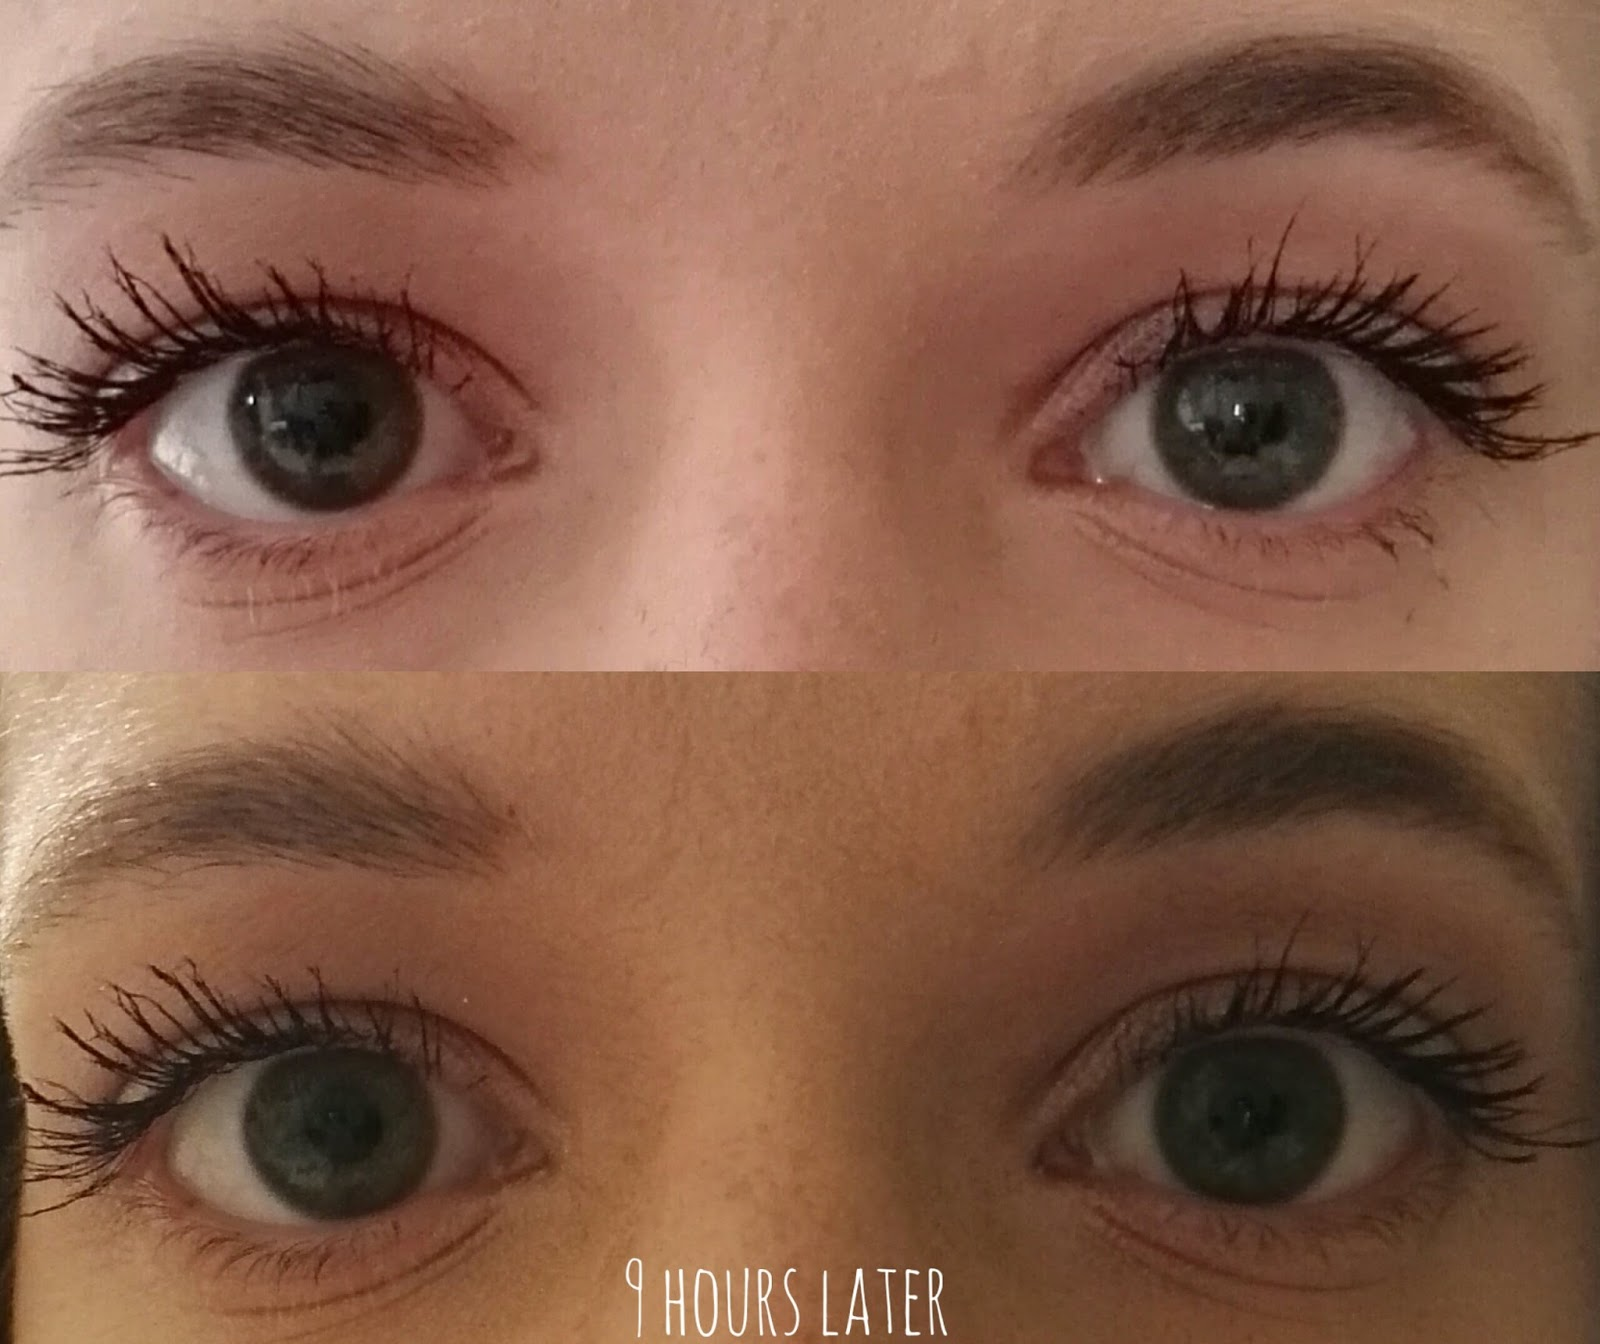 Tdc Cherry Blooms Eyelash Extensions Brush On Fiber Lashes Review